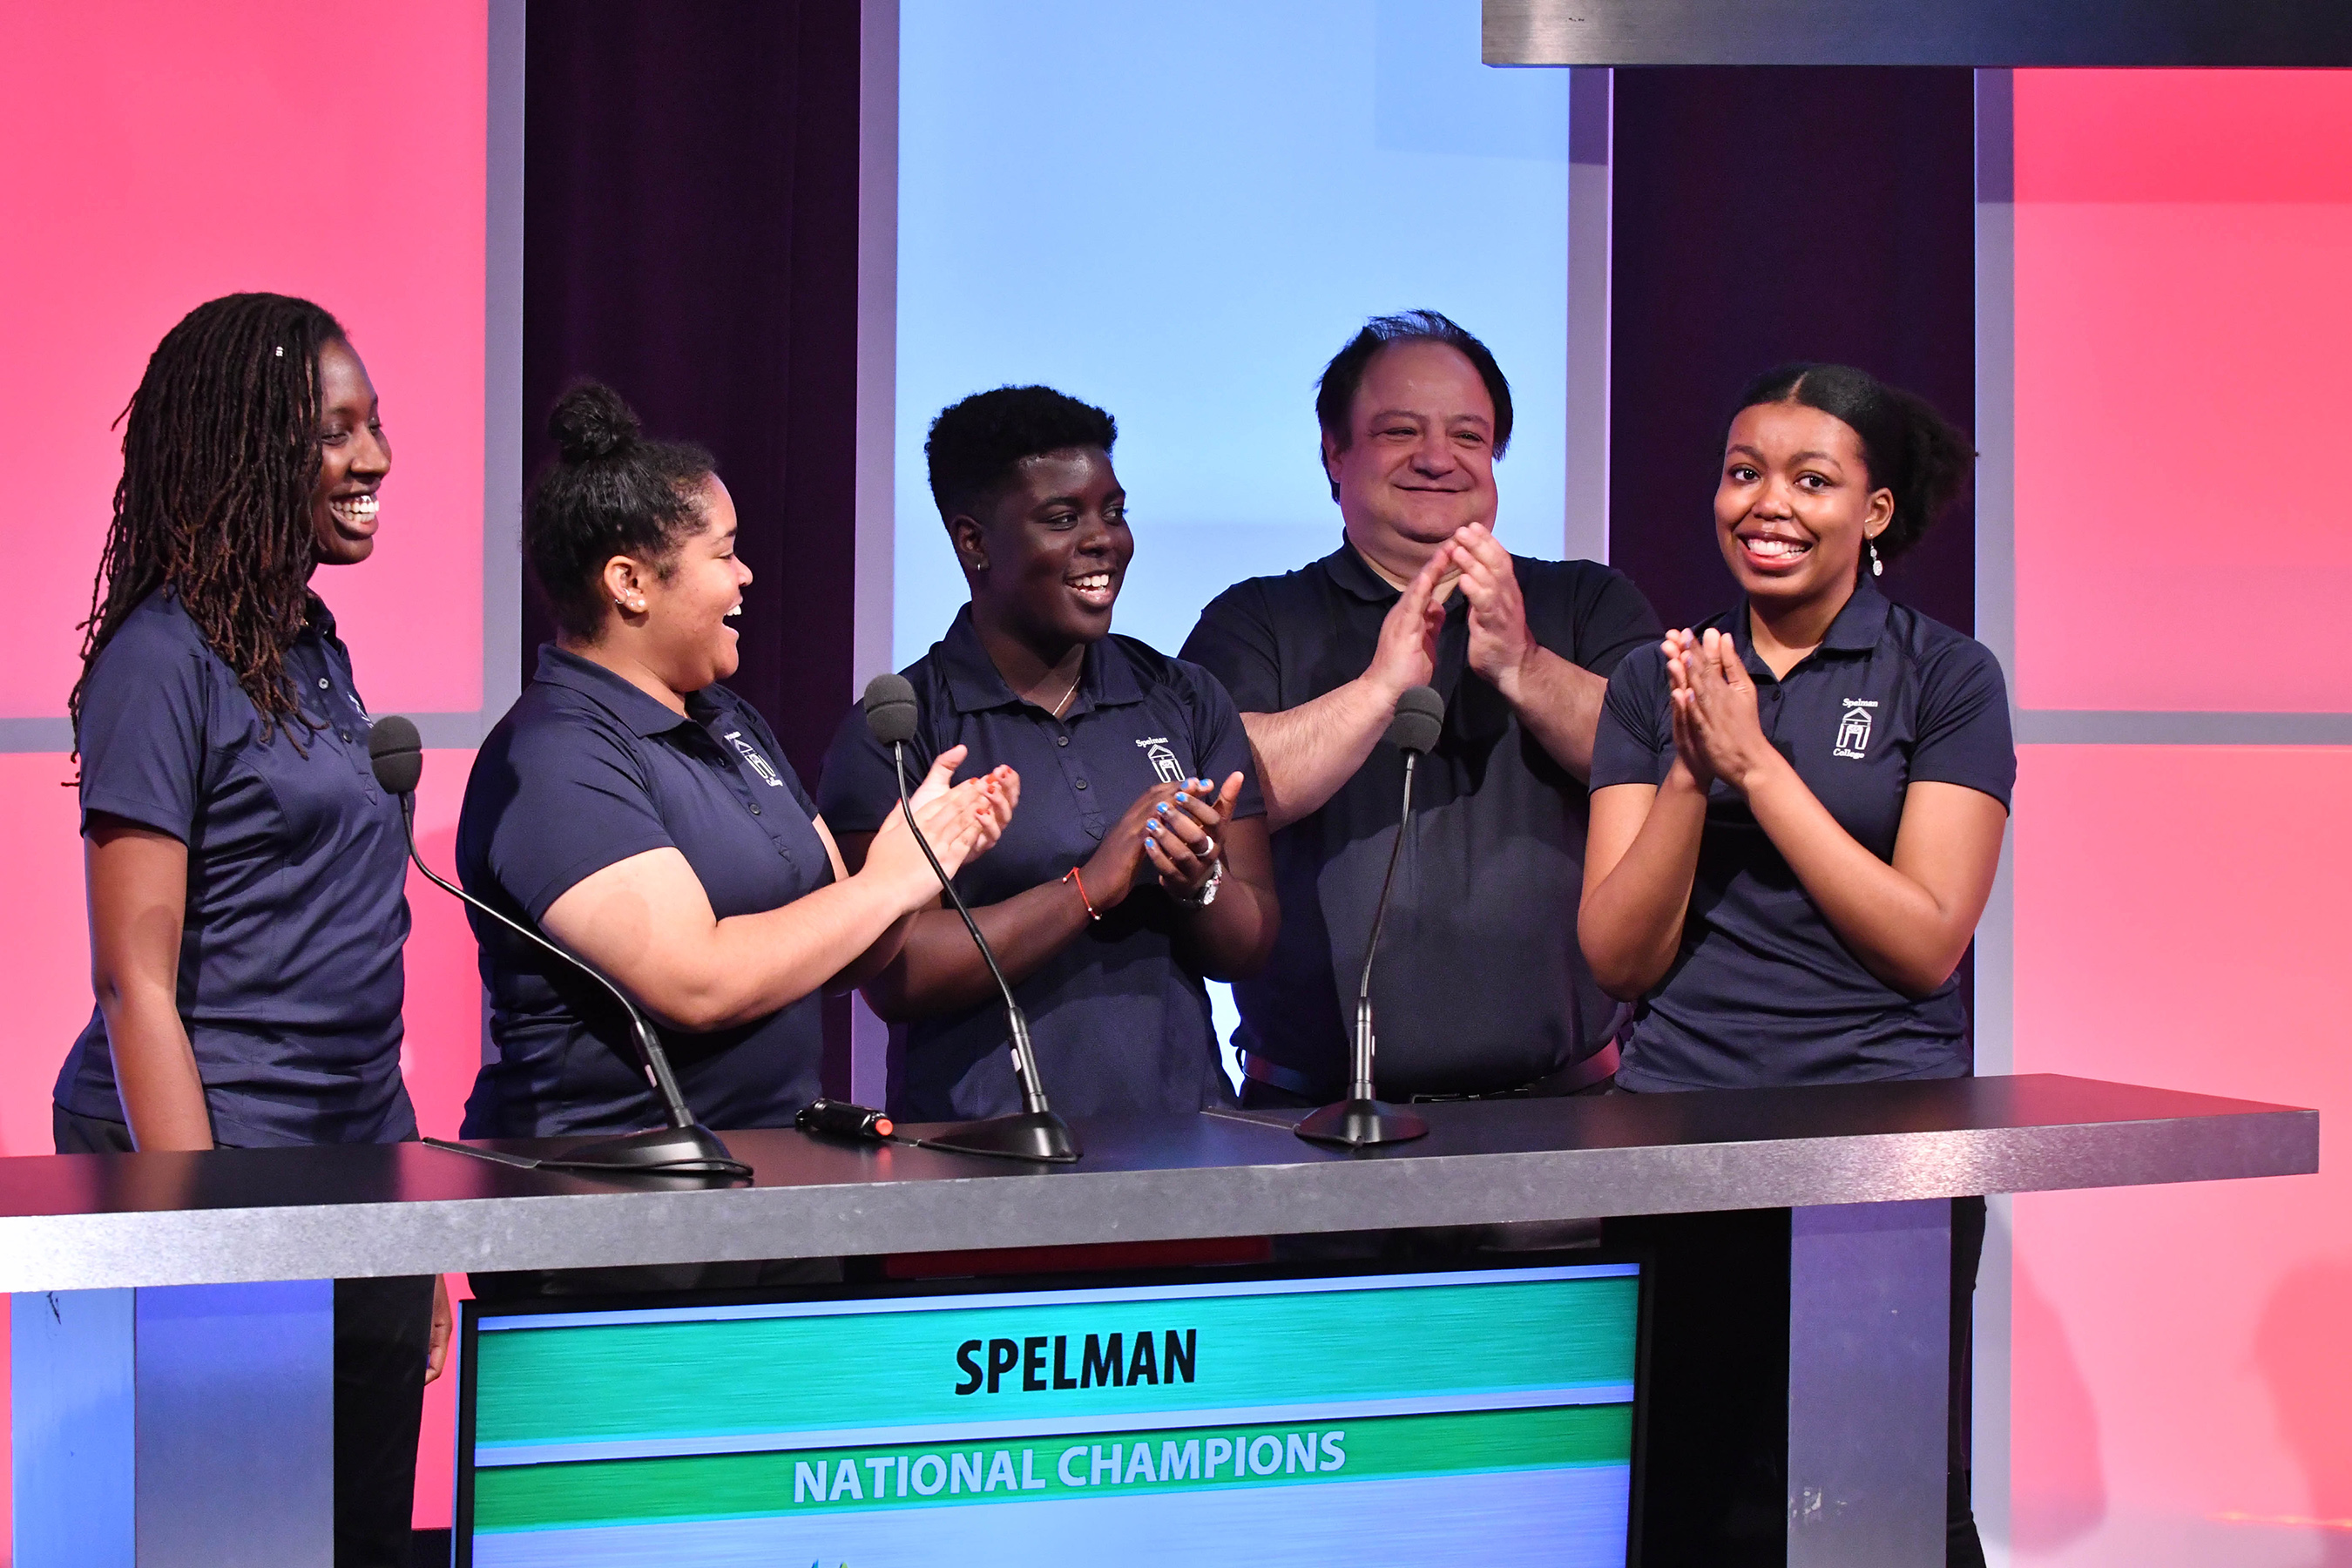 Spelman College took home the championship title and a $75,000 institutional grant at the 30th annual Honda Campus All-Star Challenge (HCASC) National Championship Tournament.